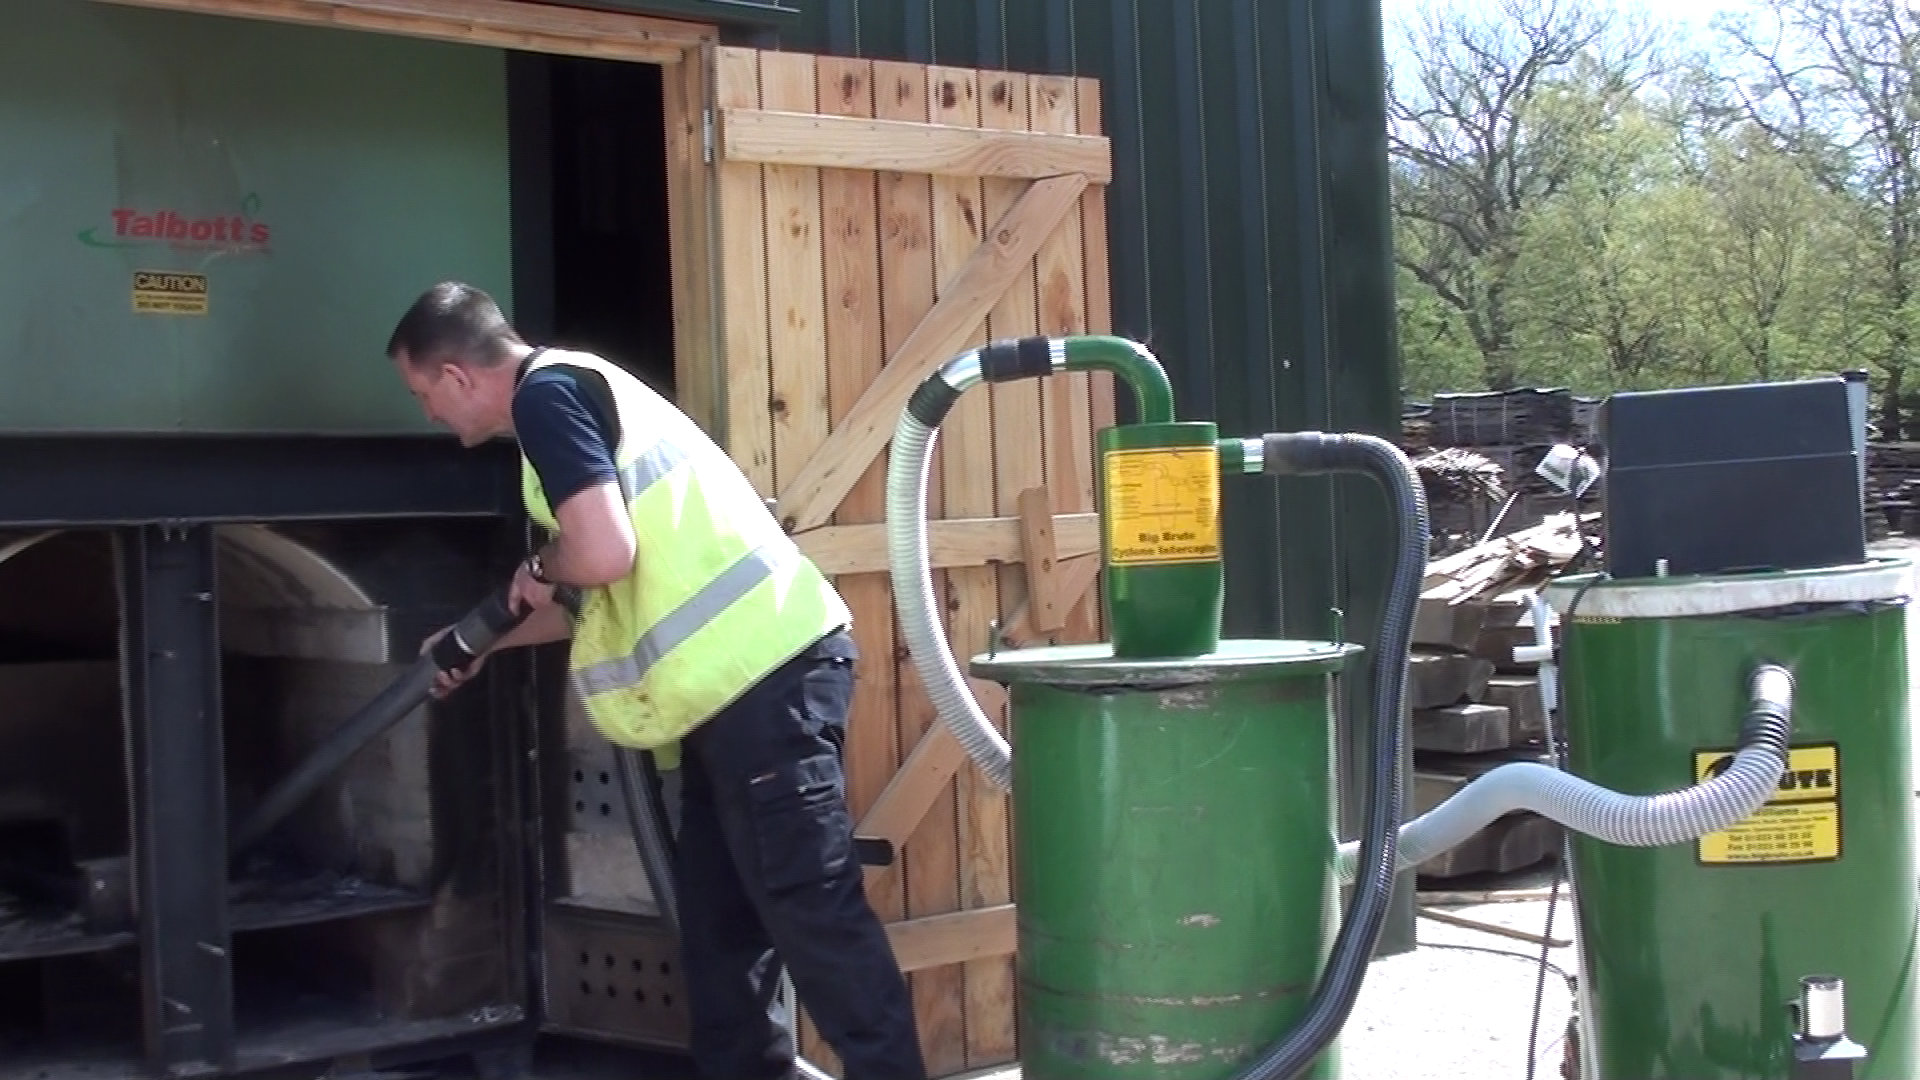 Cleaning Out Biomass Boilers with a Big Brute